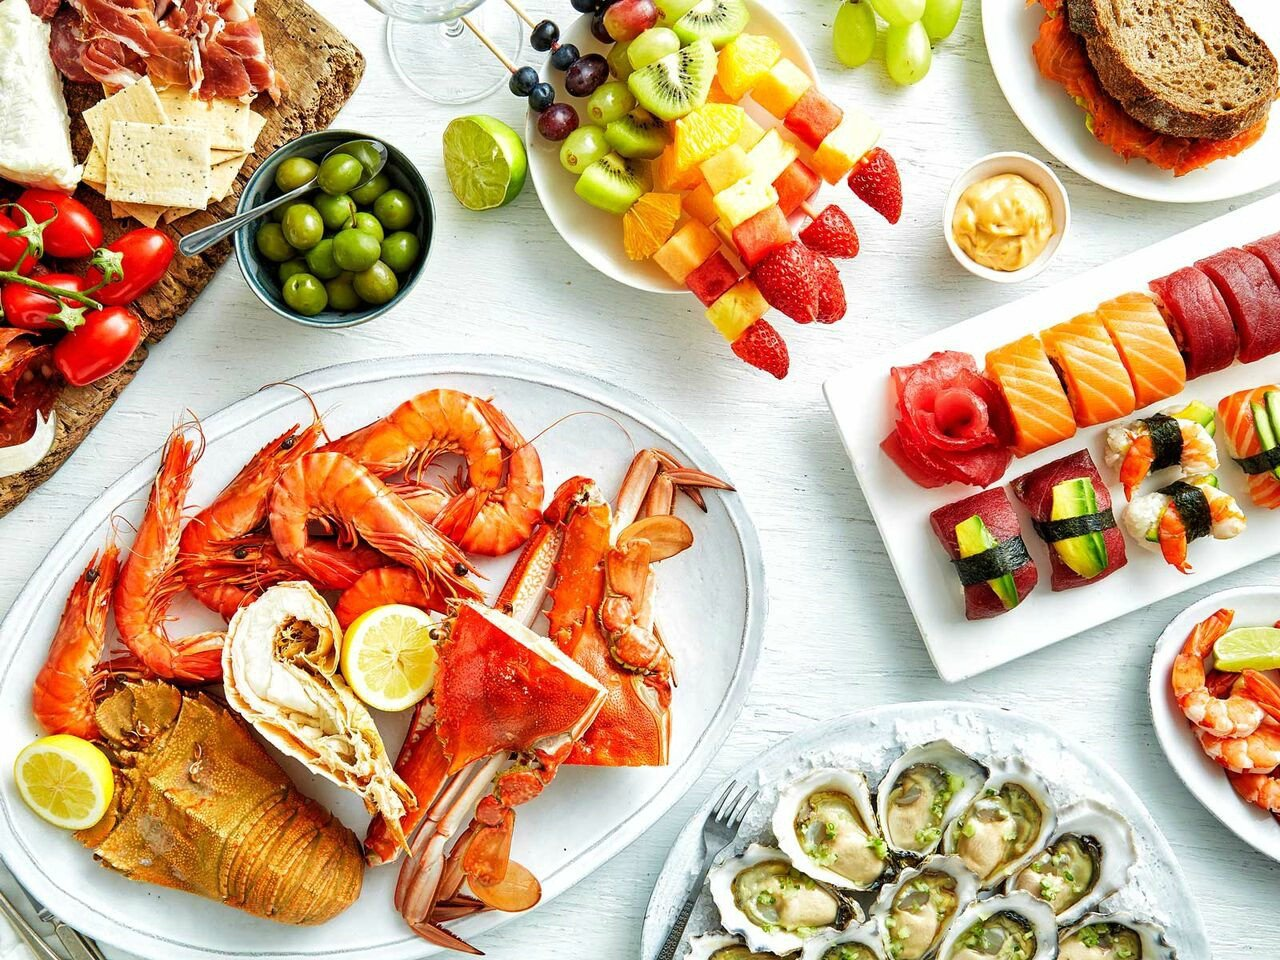 Singapore Live Seafood Supplier Delivery|Oyster|Crabs